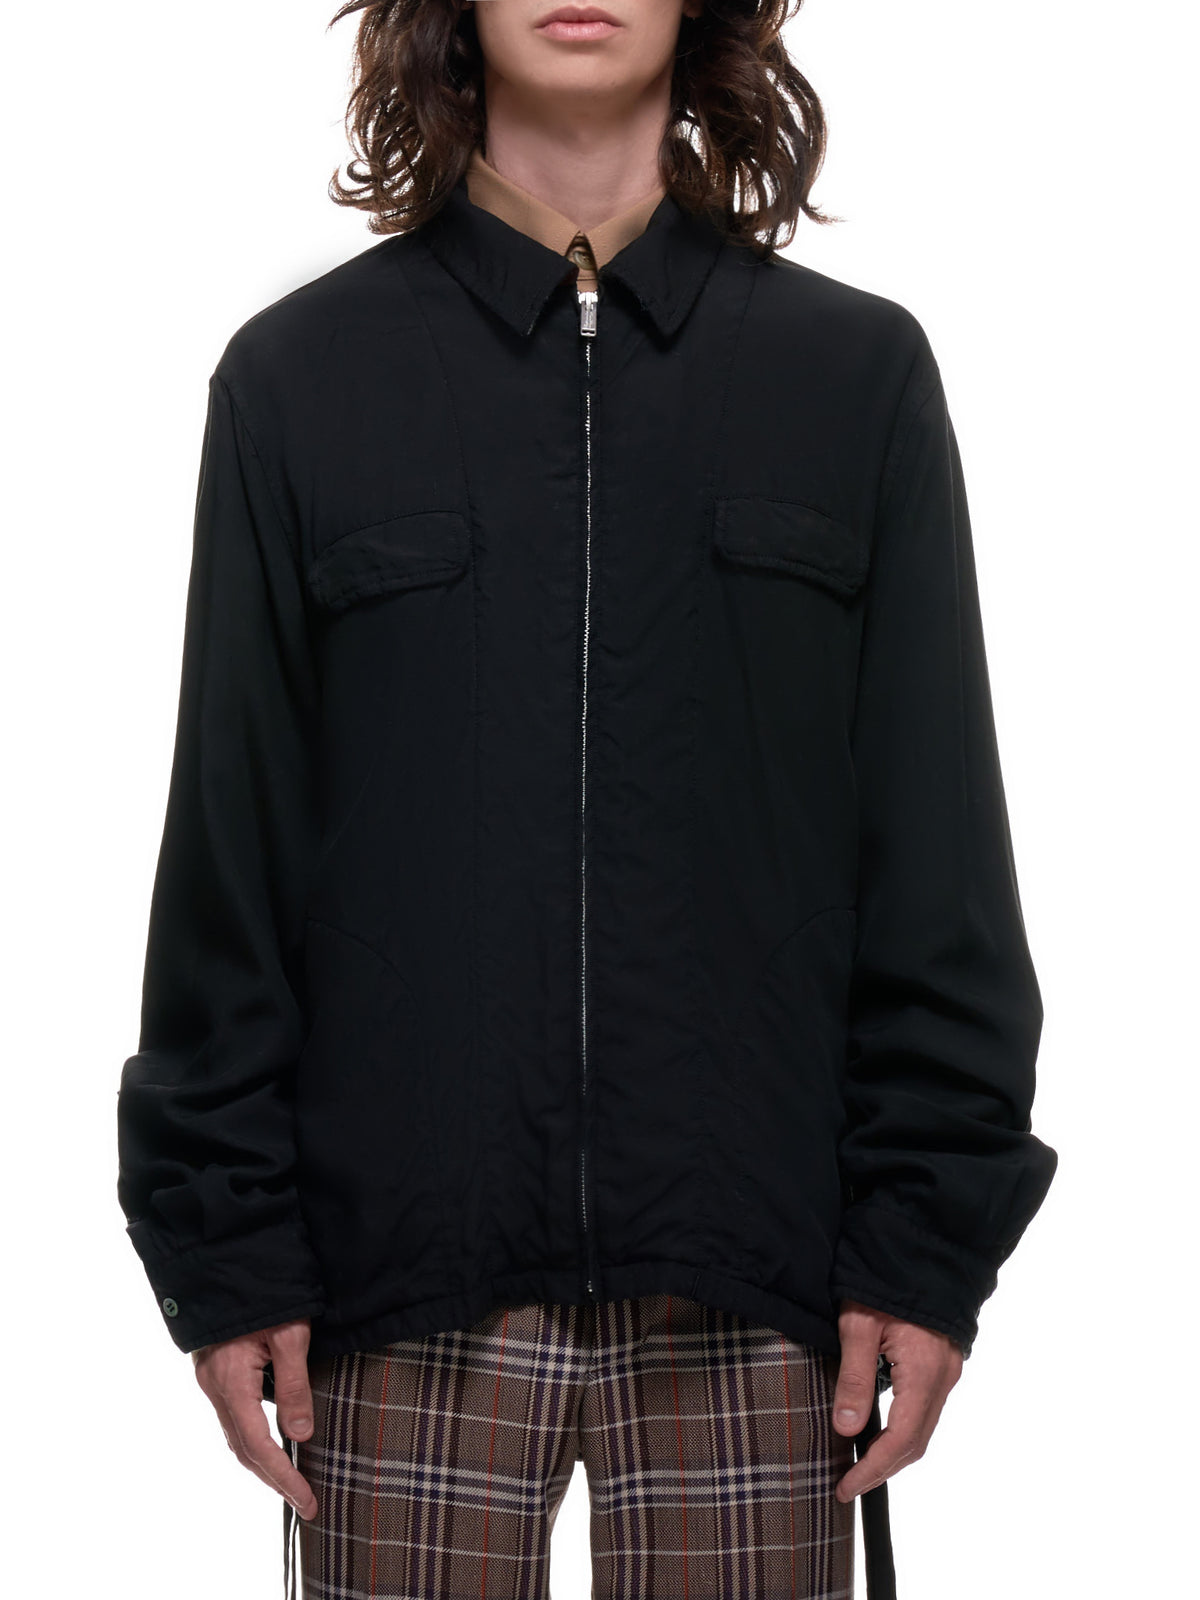 Undercover Jacket | H.Lorenzo Front